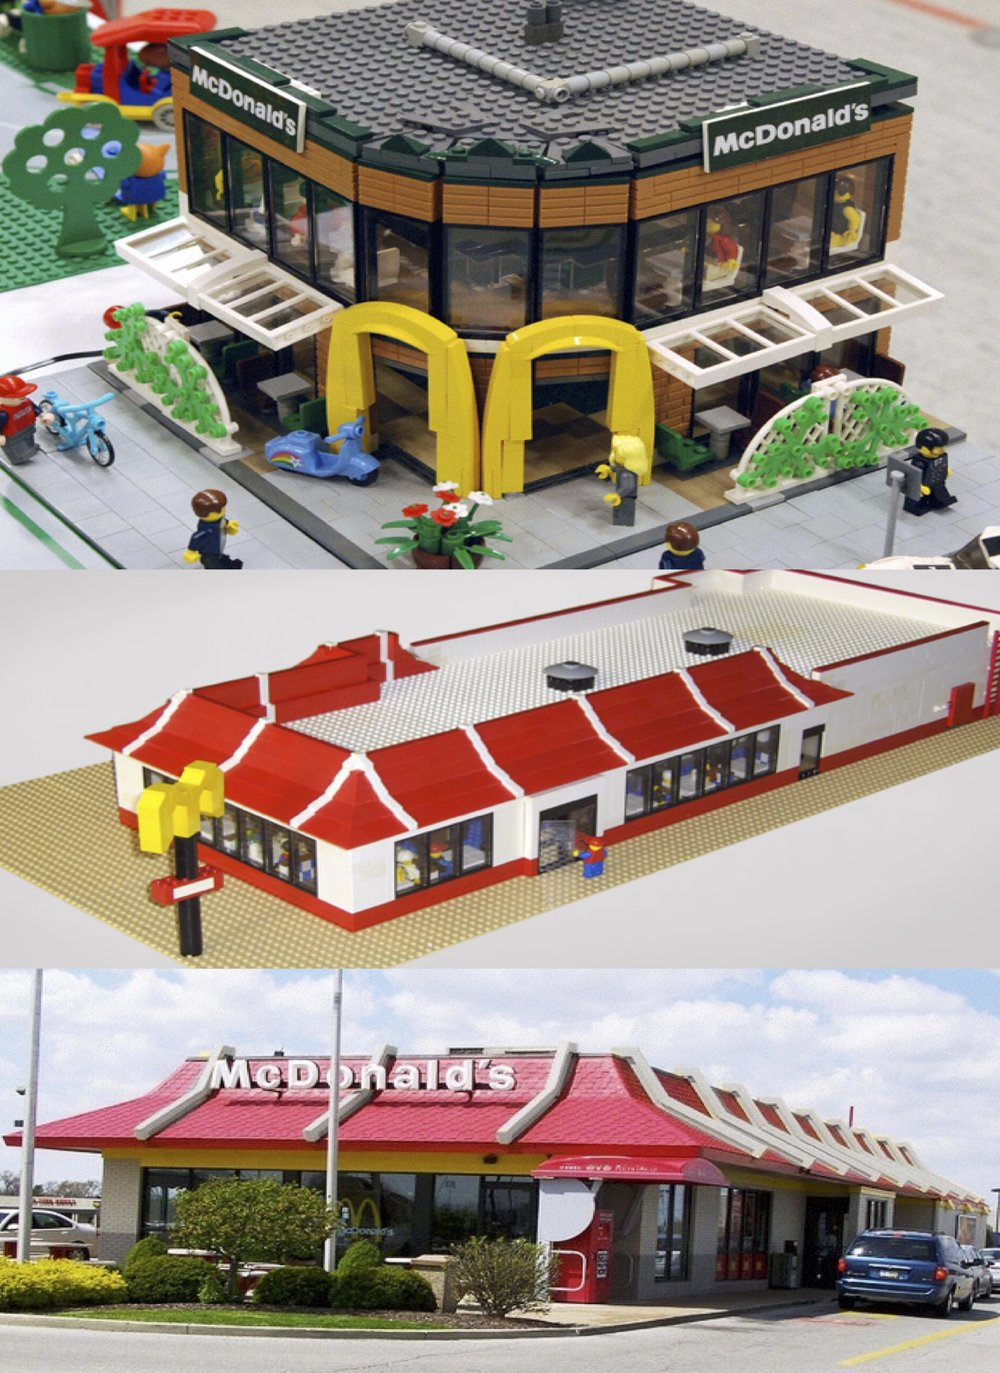 Original McLego Idea   Let's build an actual McDonald's restaurant made out of Lego in the birthplace of Lego—Copenhagen.